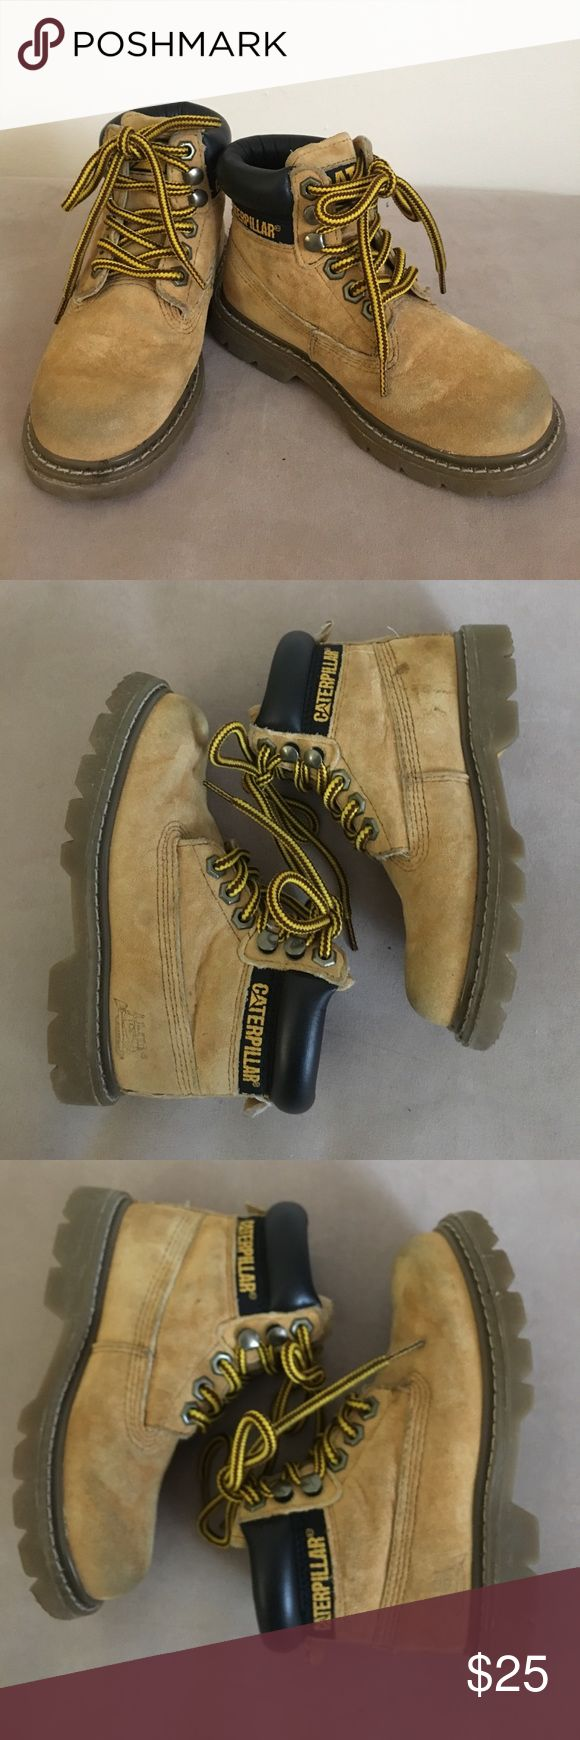 Caterpillar kids 10.5 lace up leather work boots Authentic Caterpillar kids 10.5 lace up leather work boots. Caterpillar Shoes Boots